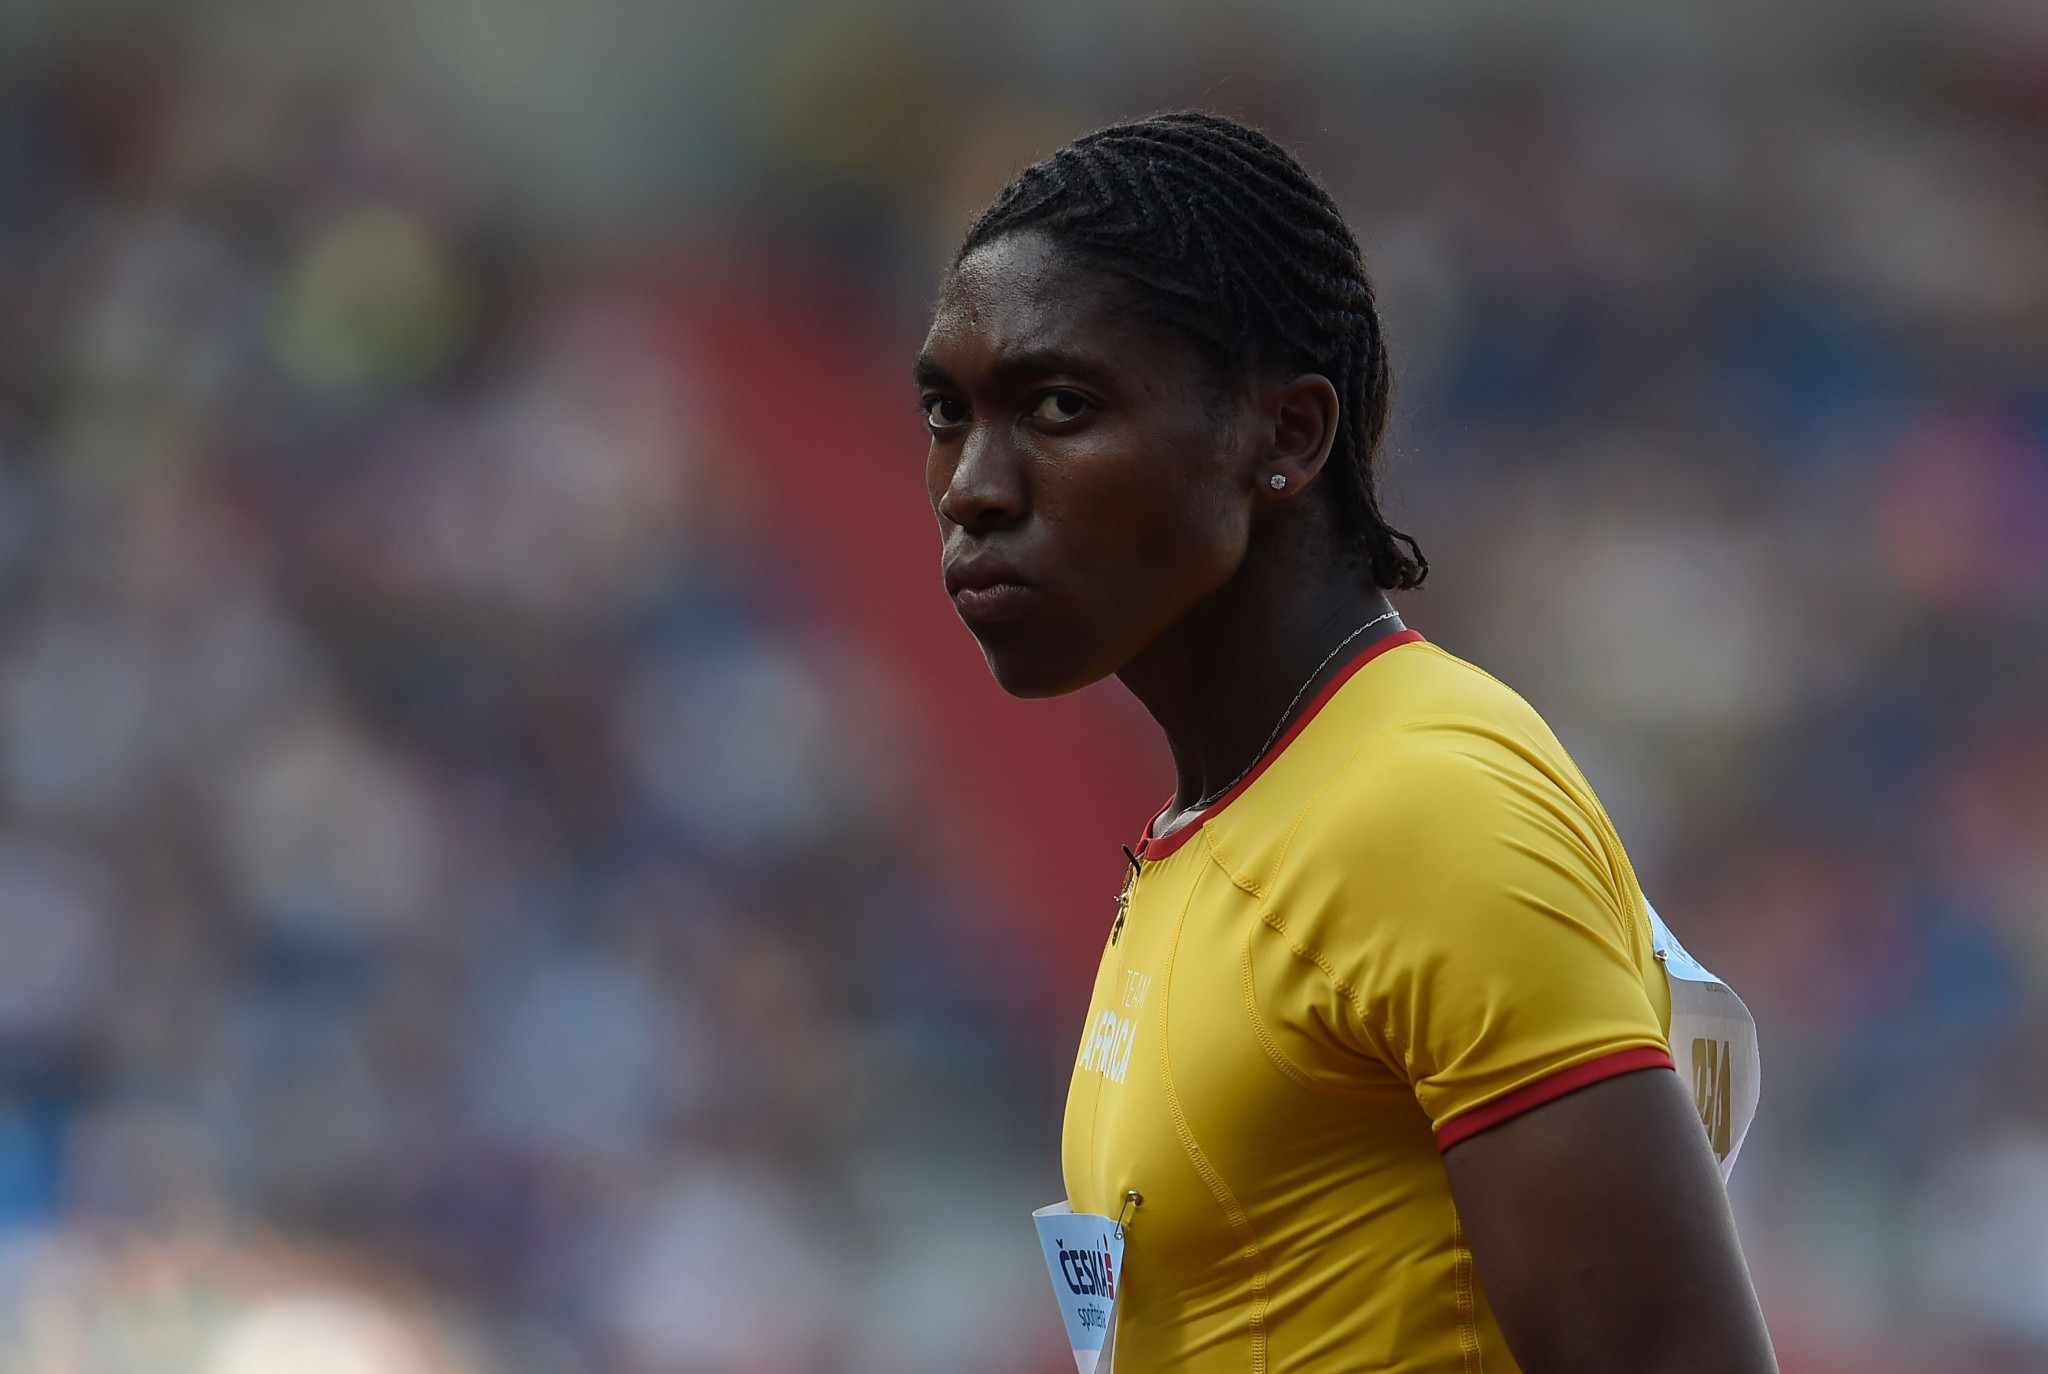 South Africa's Caster Semenya could be banned from competing against women if the CAS rules against her ©Getty Images